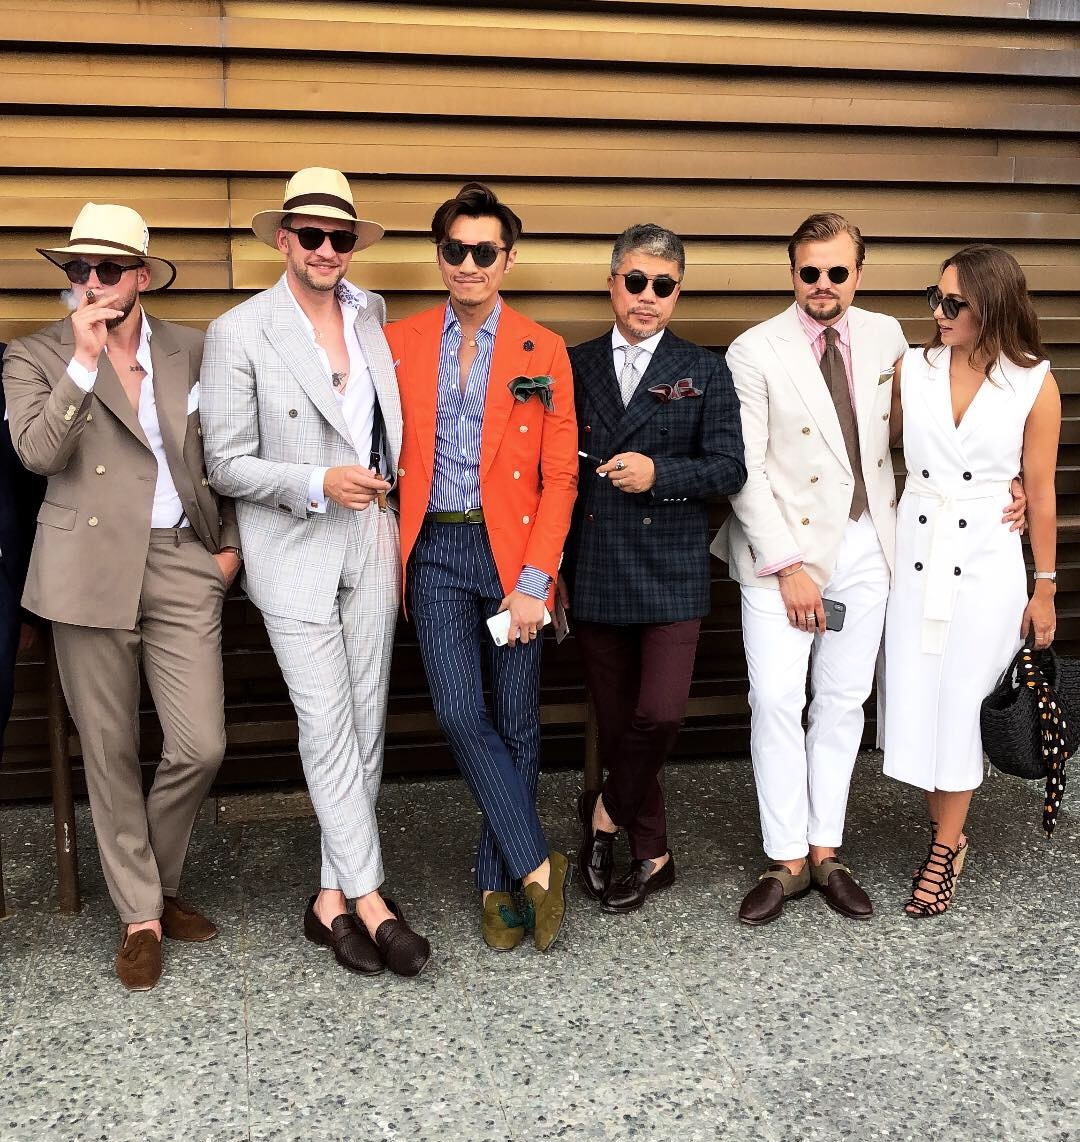 Pitti Uomo 94 - A photo diary of this June's bi-annual event.